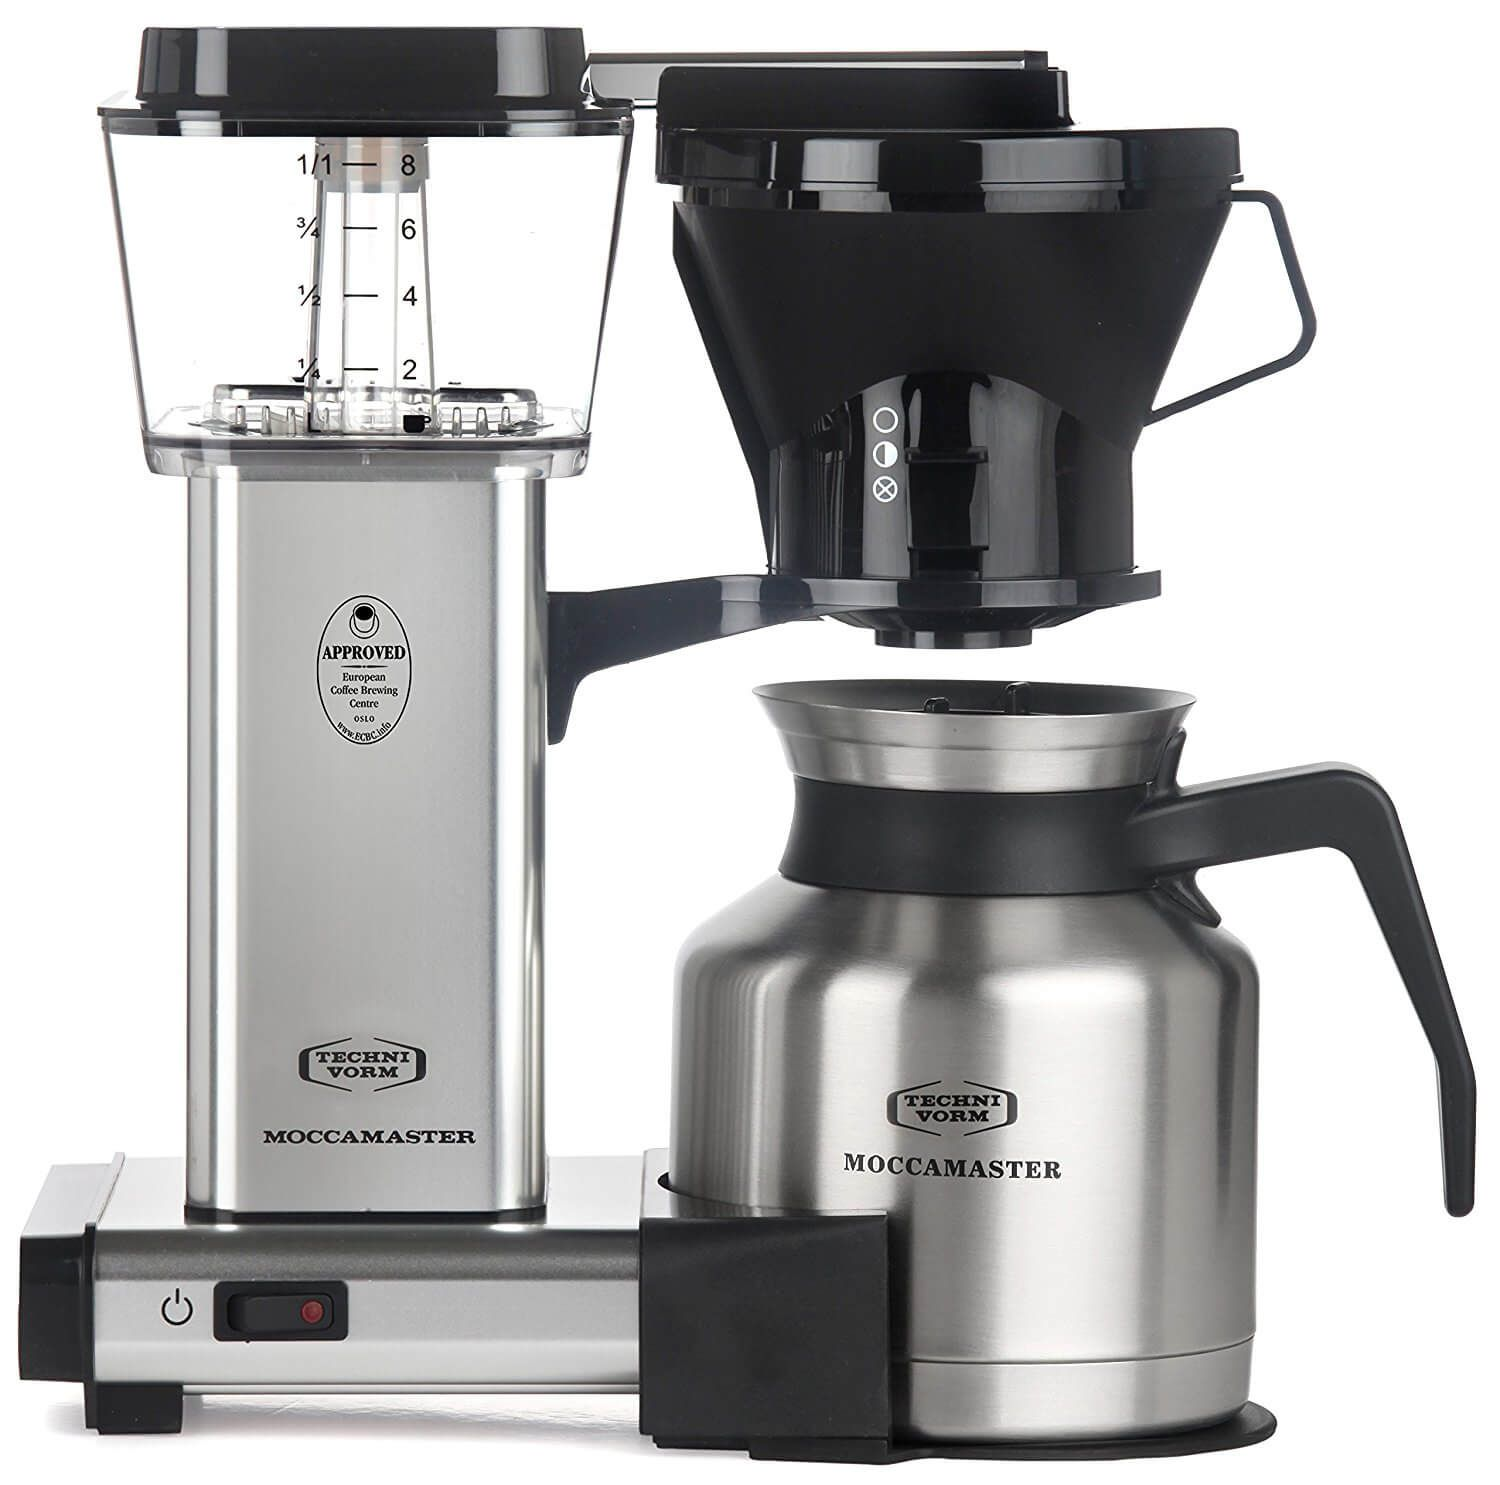 Technivorm moccamaster kbts coffee maker on sale technivorm